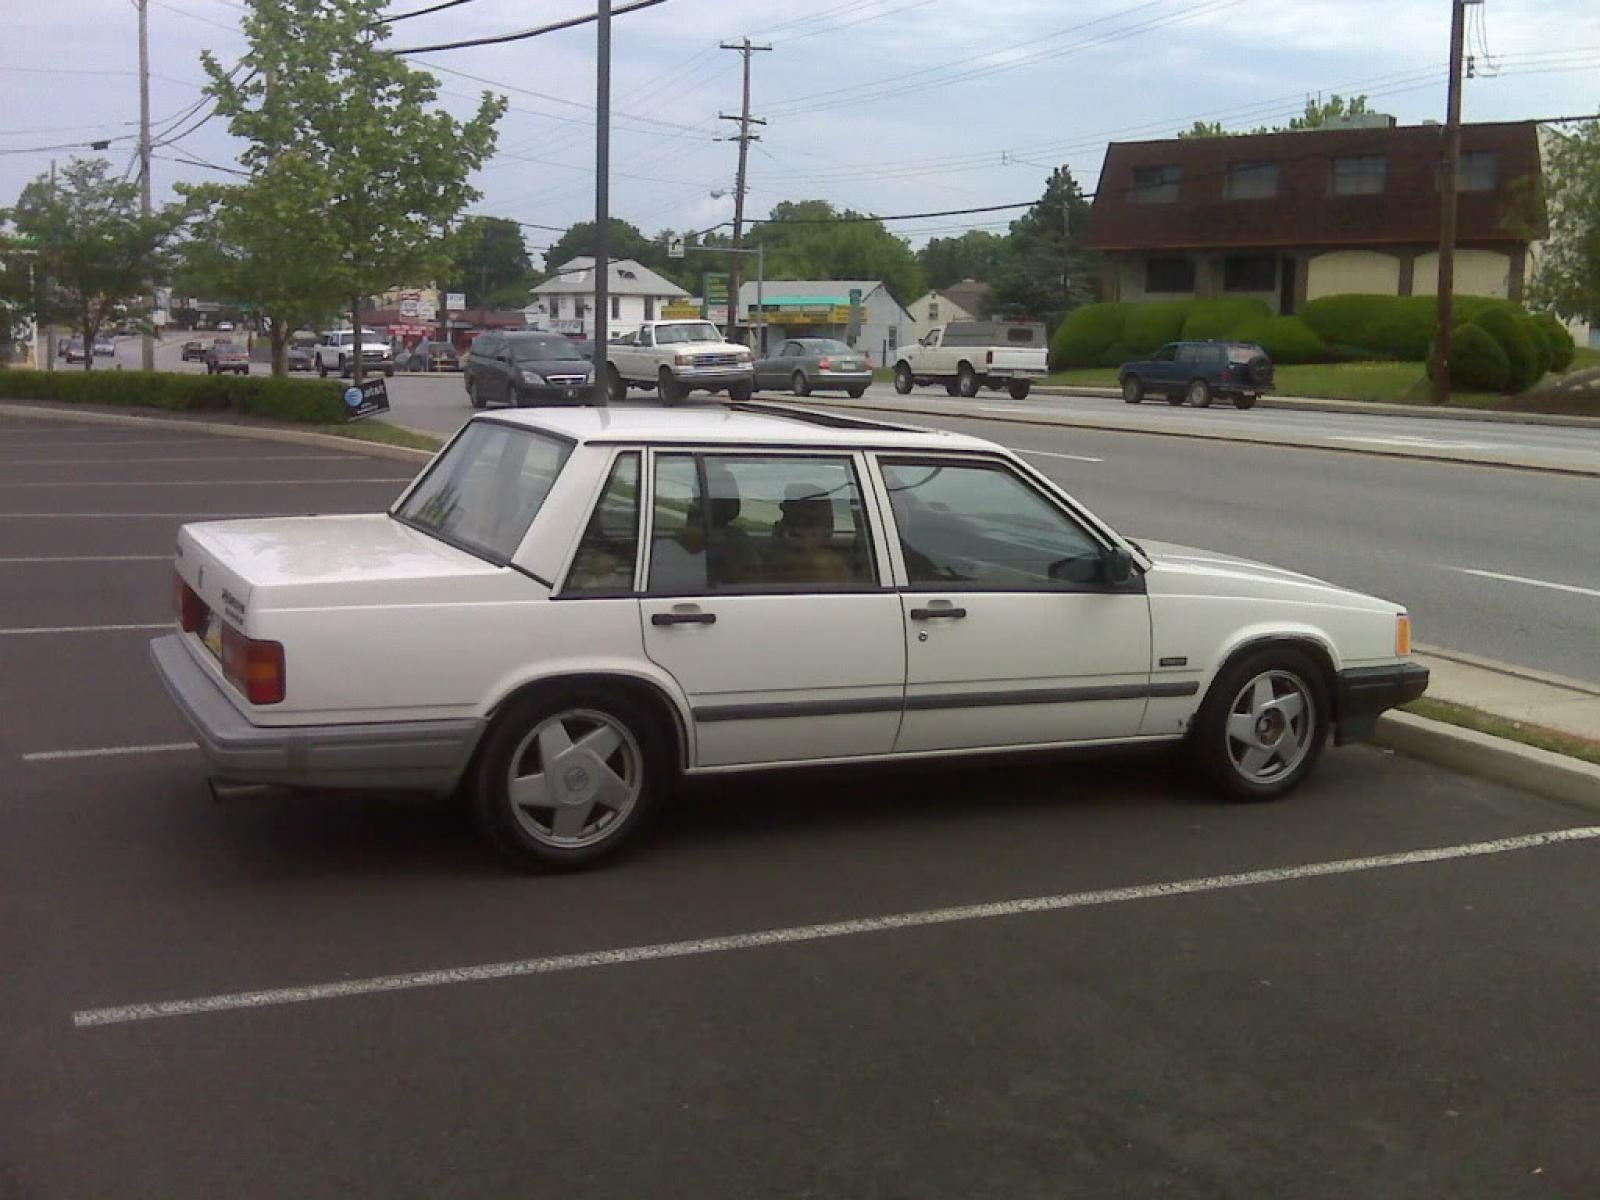 1990 Volvo 740 - Information and photos - Zomb Drive